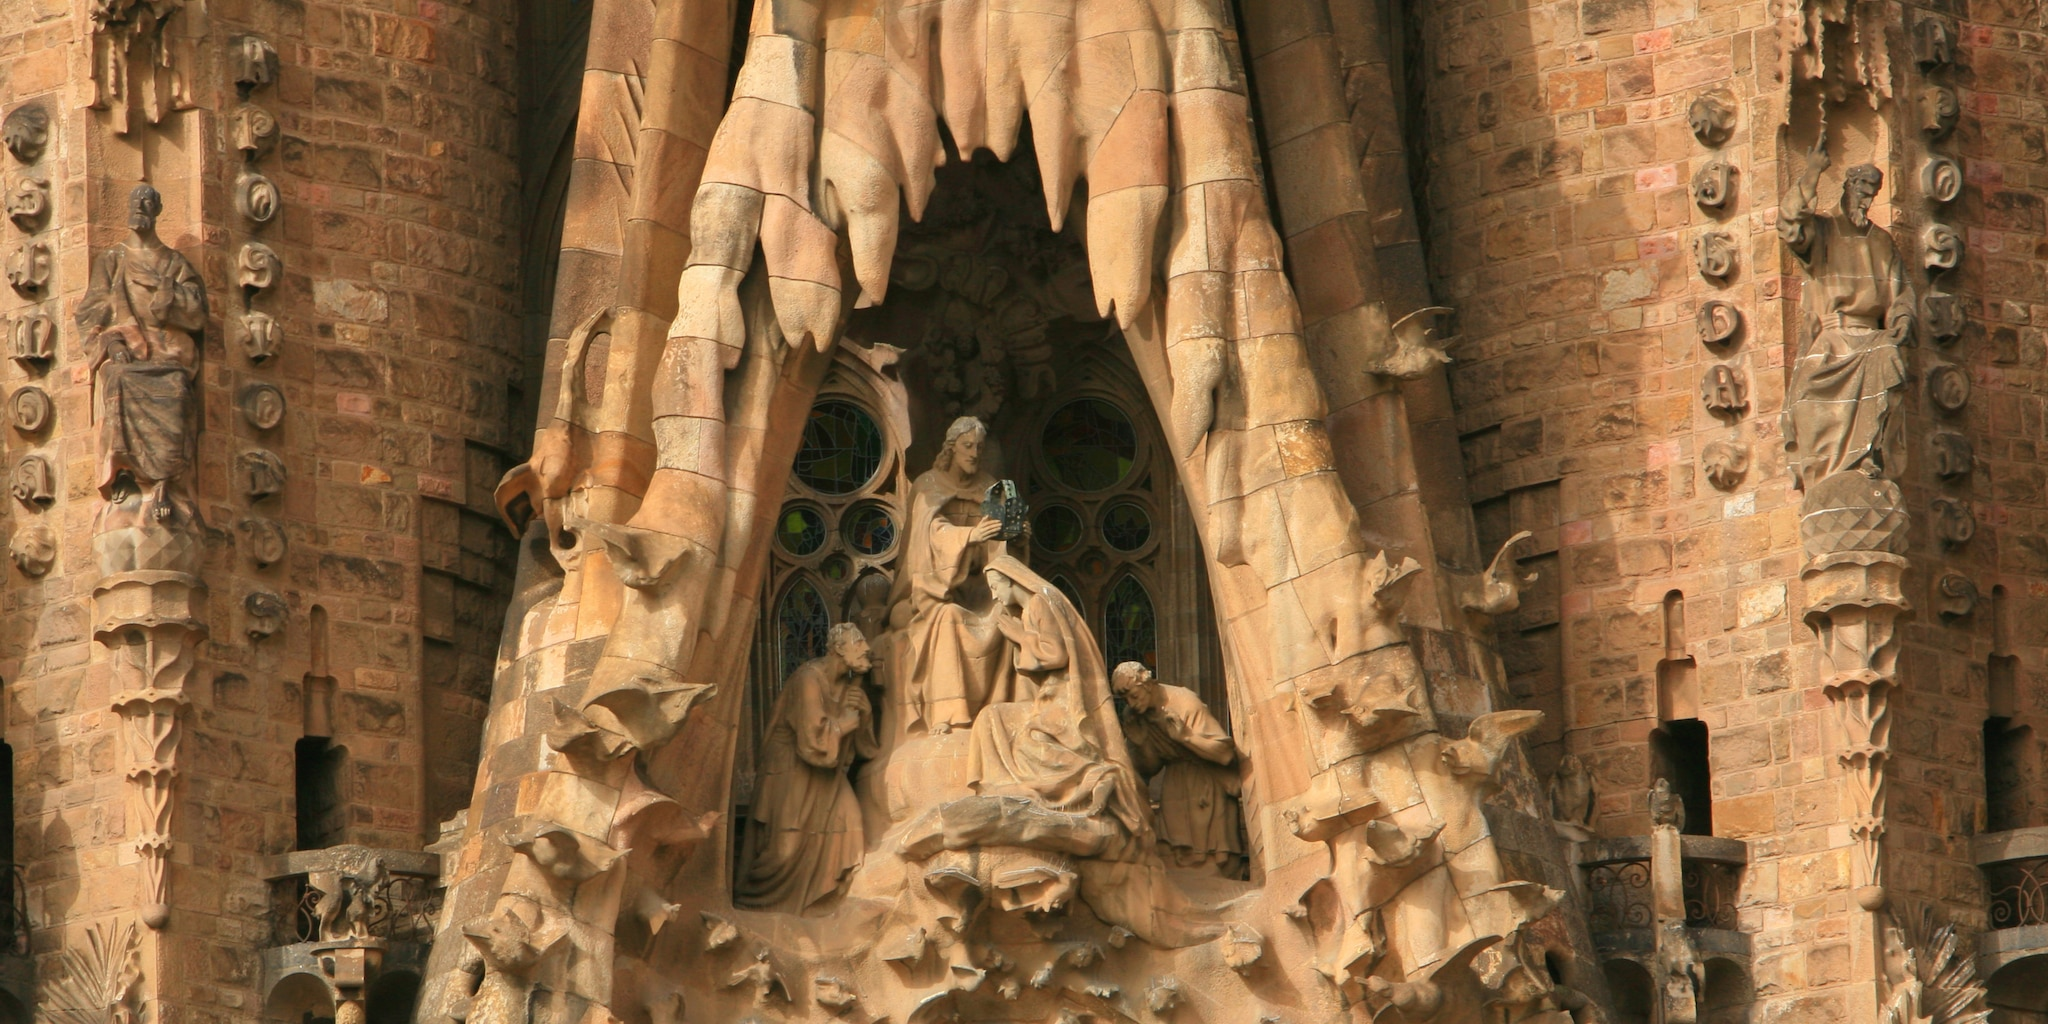 The intricately sculpted Nativity facade of La Sagrada Familia Cathedral in Barcelona